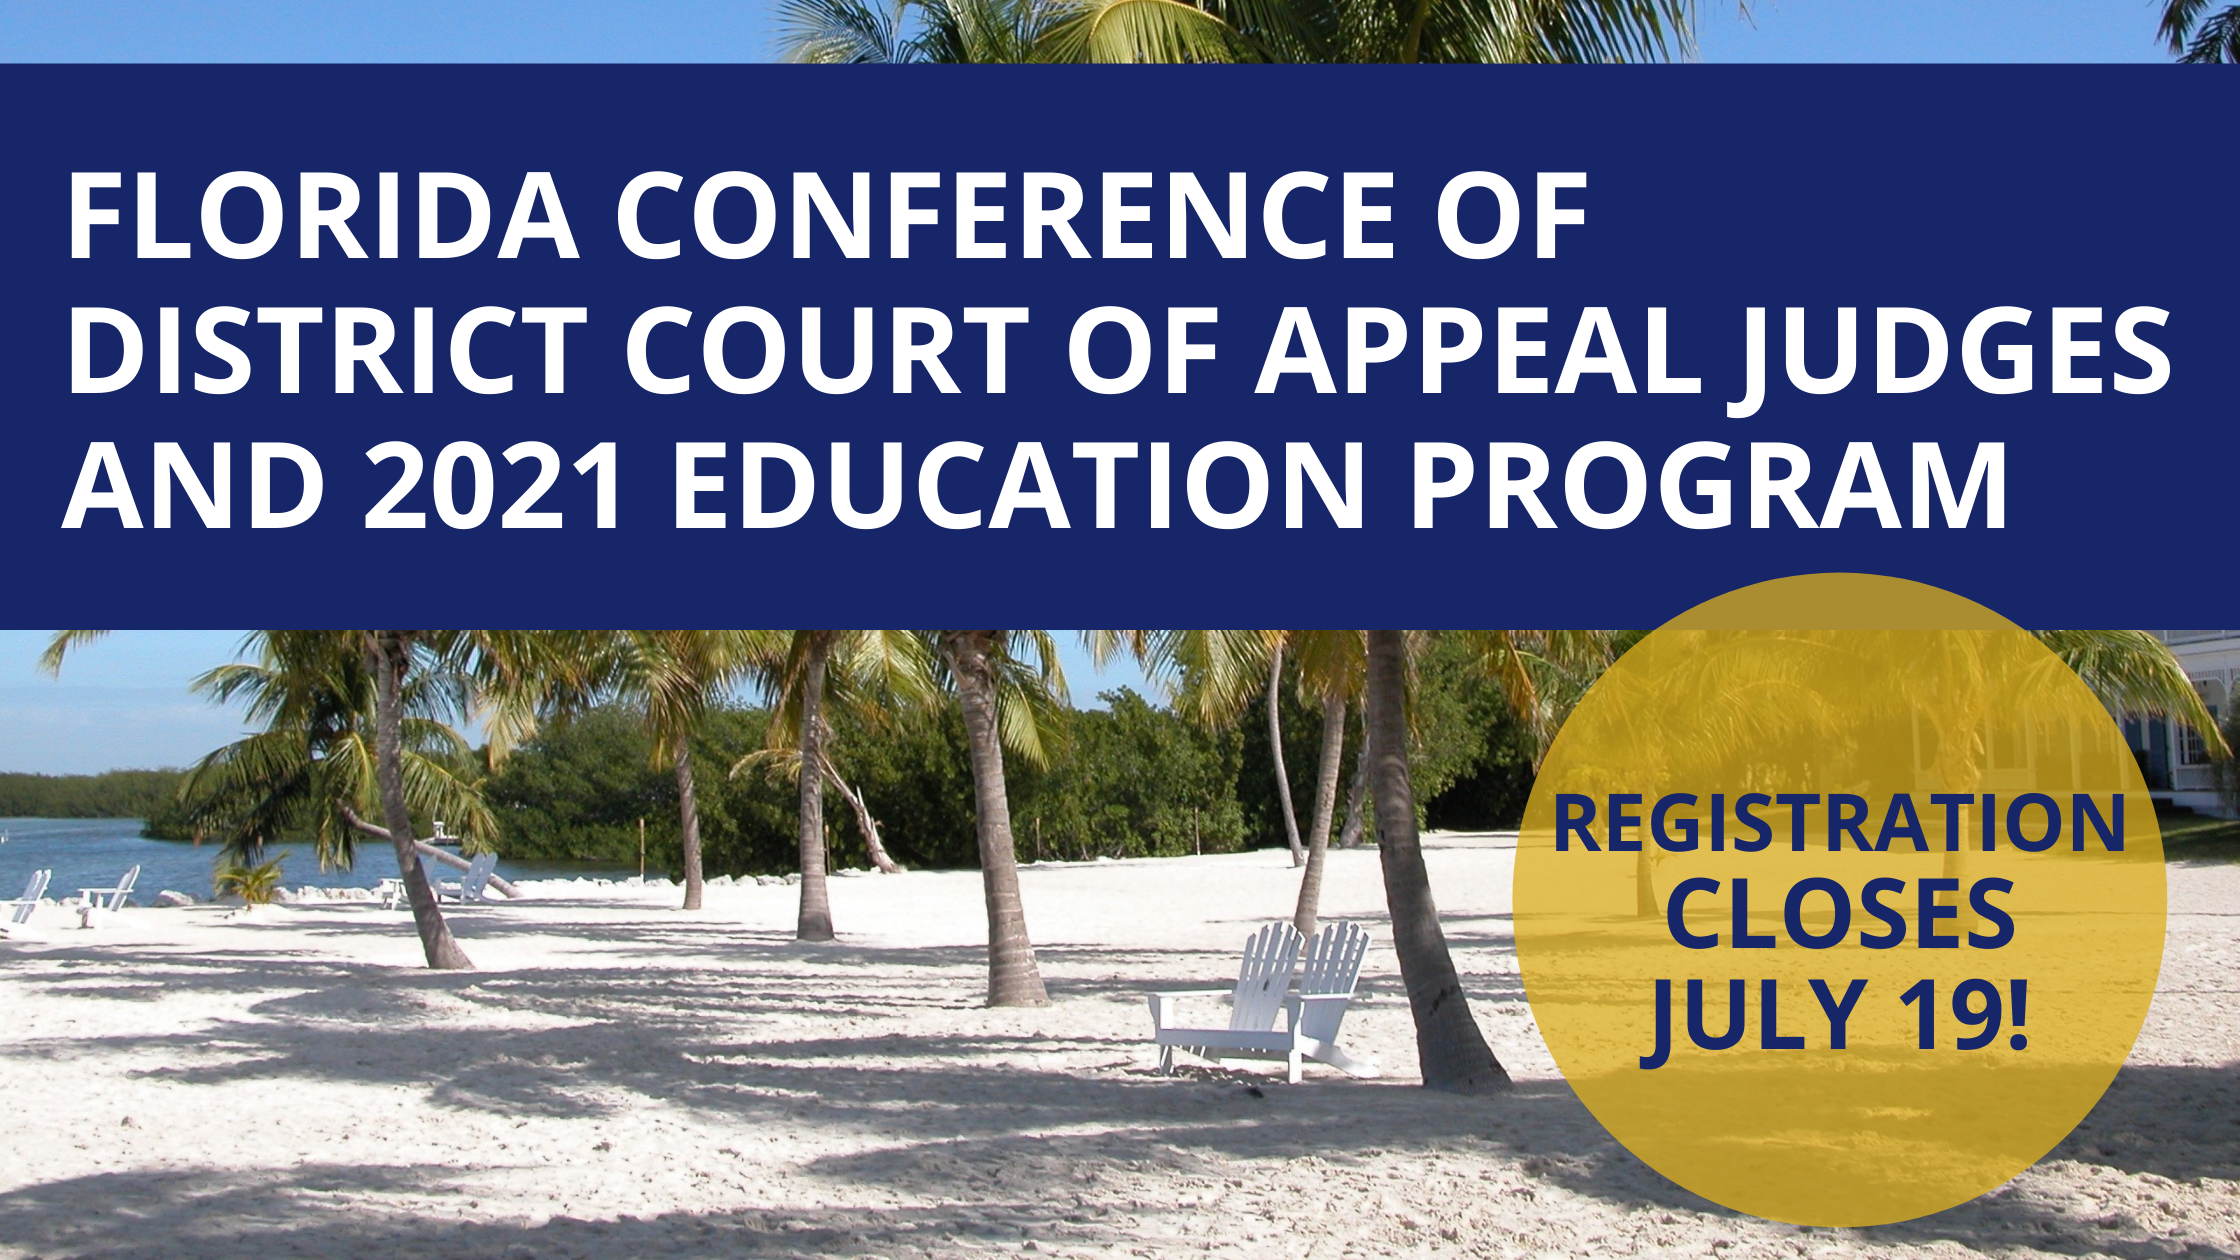 FLORIDA CONFERENCE OF DISTRICT COURT OF APPEAL JUDGES AND 2021 EDUCATION  PROGRAM - REGISTRATION CLOSES JULY 19!